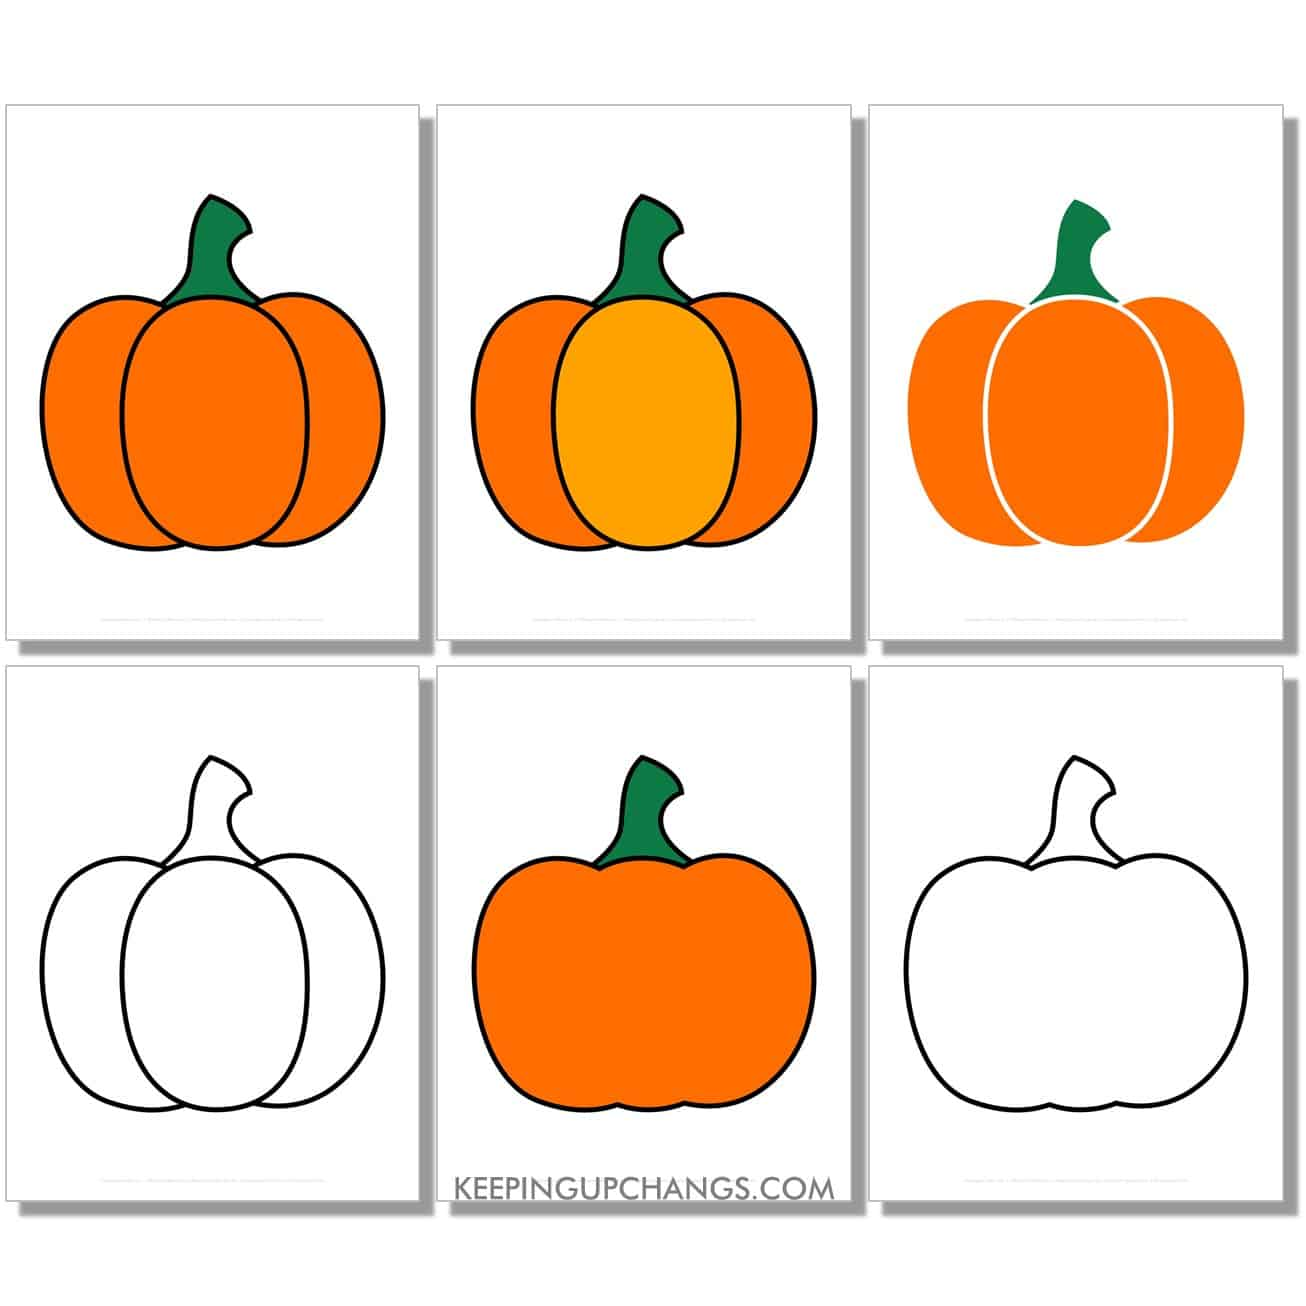 free large simple pumpkin in color, black and white, silhouette, full size page.